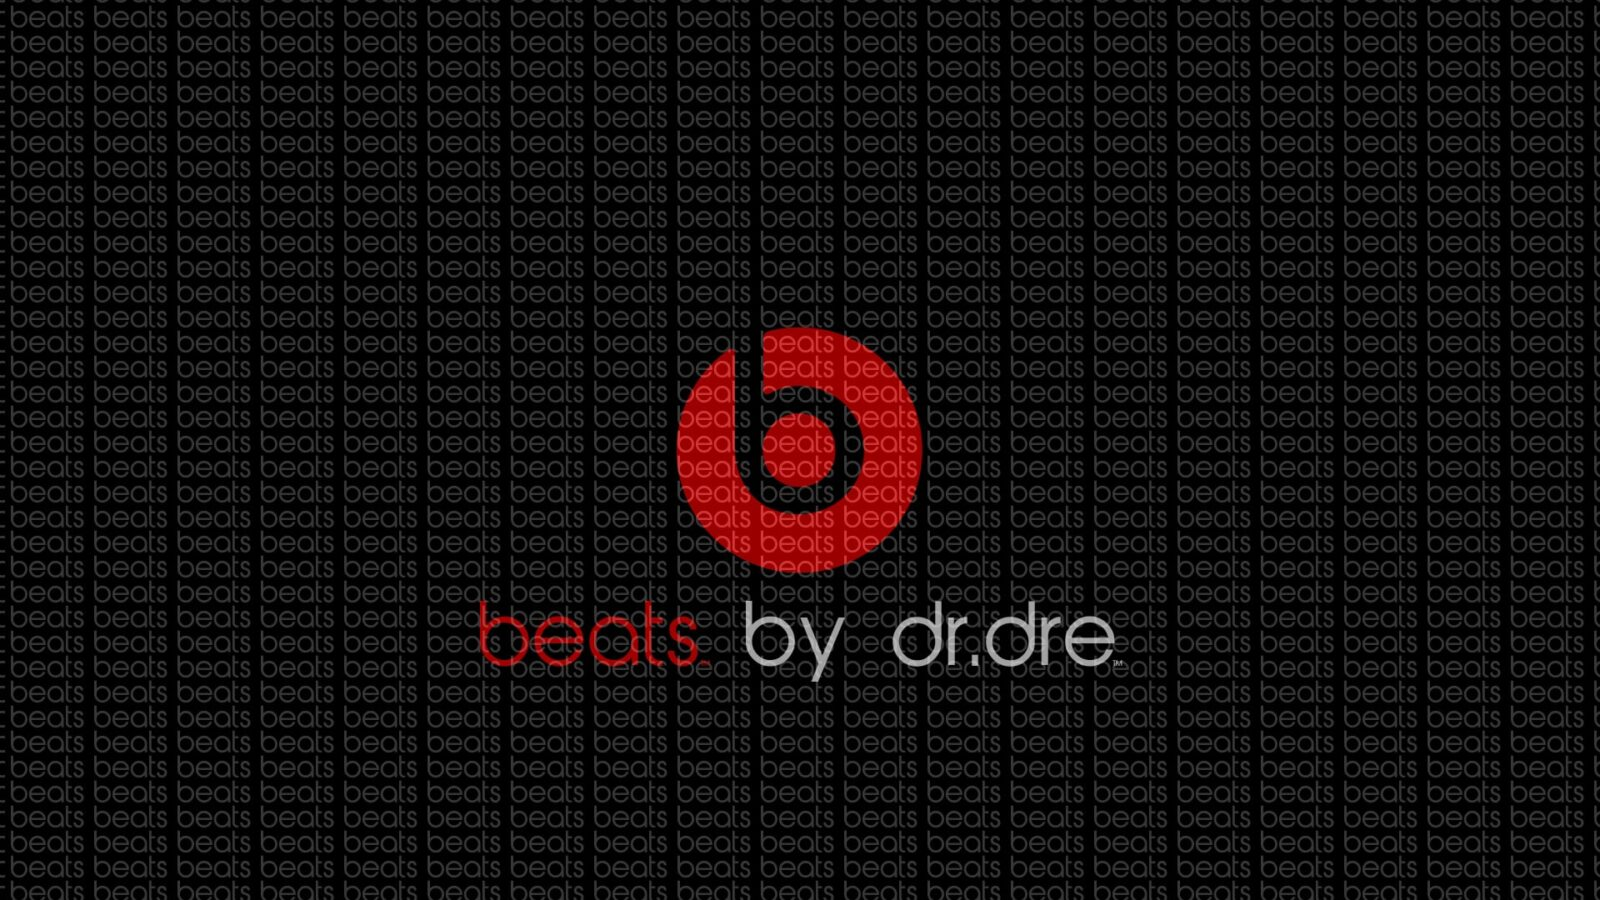 Beats By Dr Dre word backgrounds